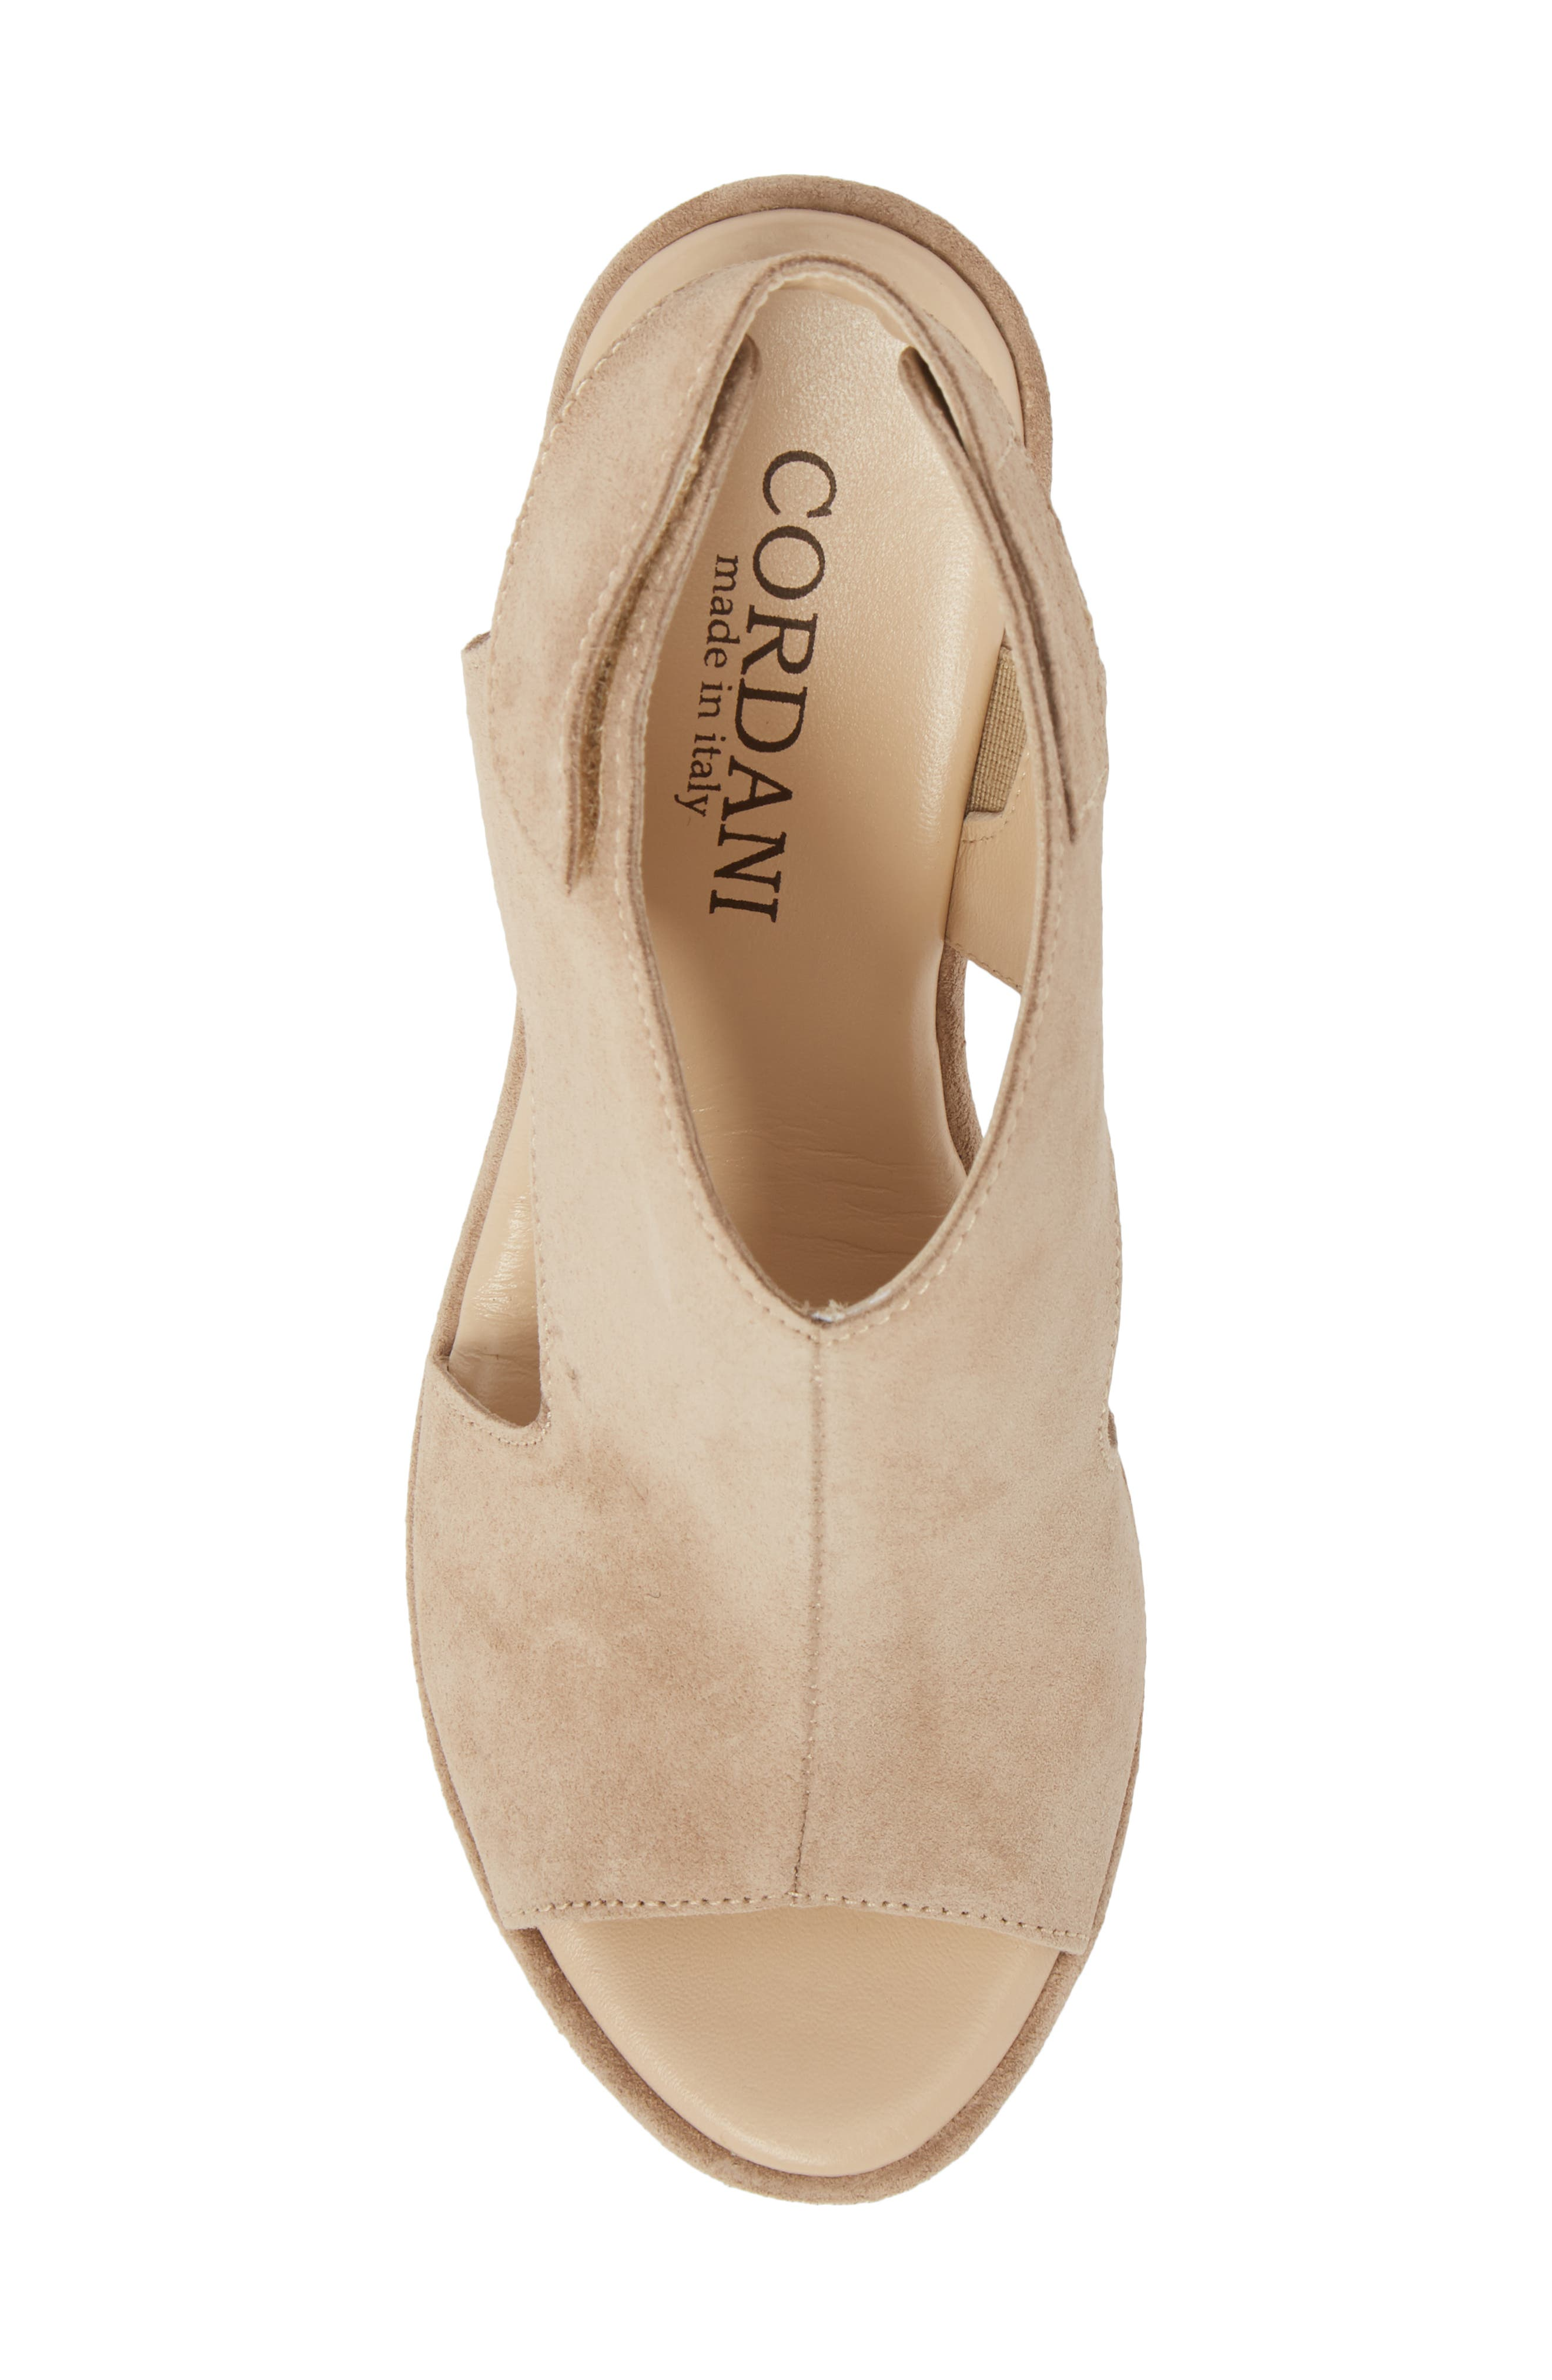 Reed Wedge Sandal,                             Alternate thumbnail 5, color,                             Corda Taupe Suede